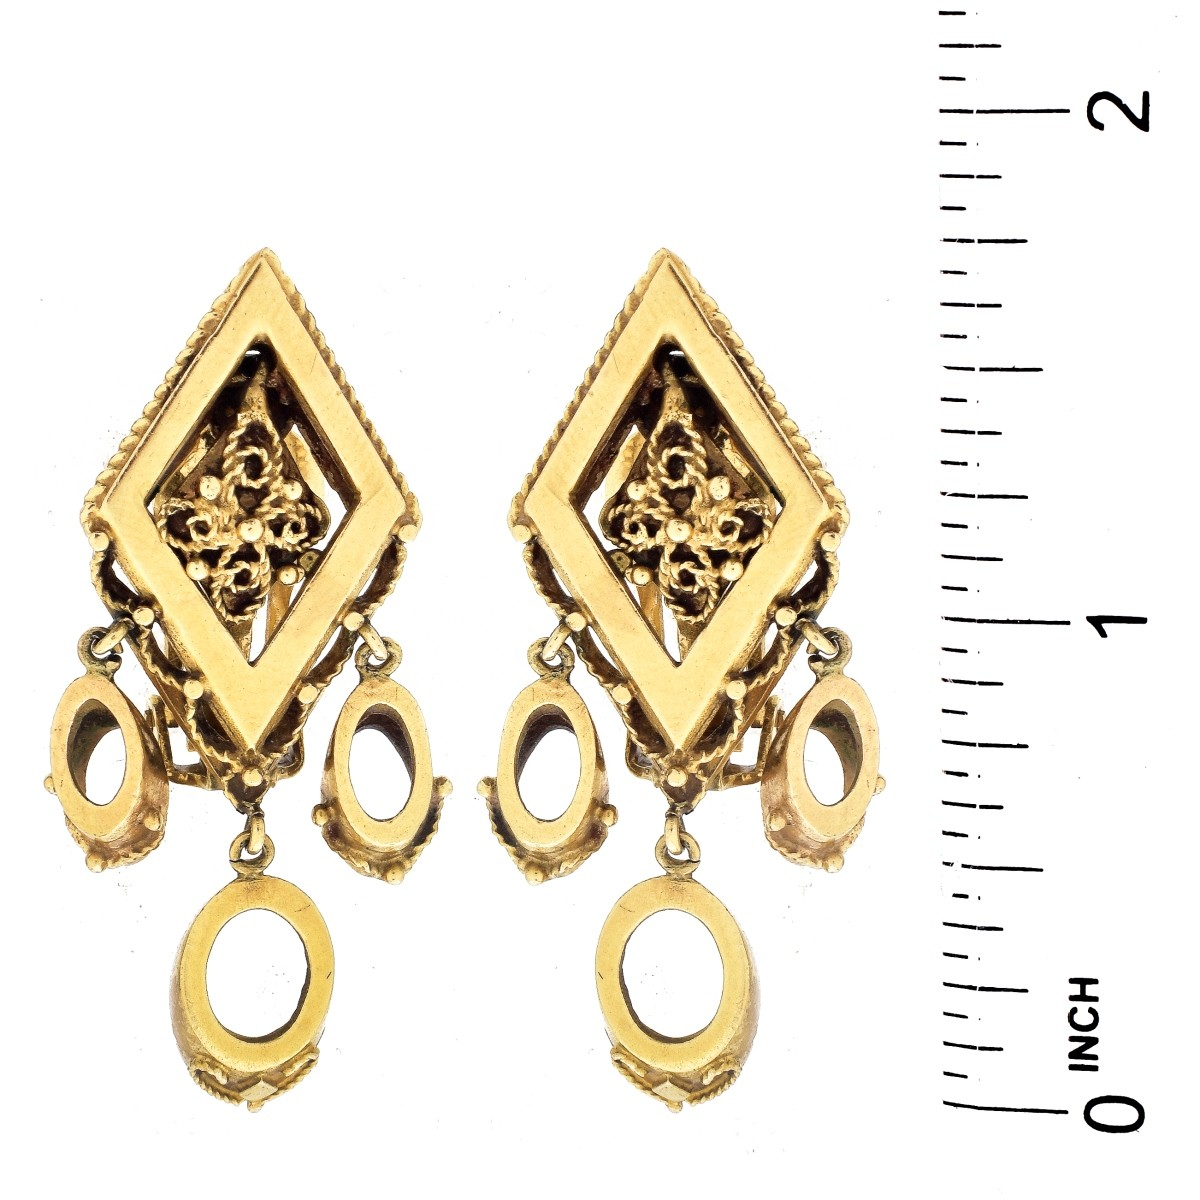 Vintage 14K Gold Earrings